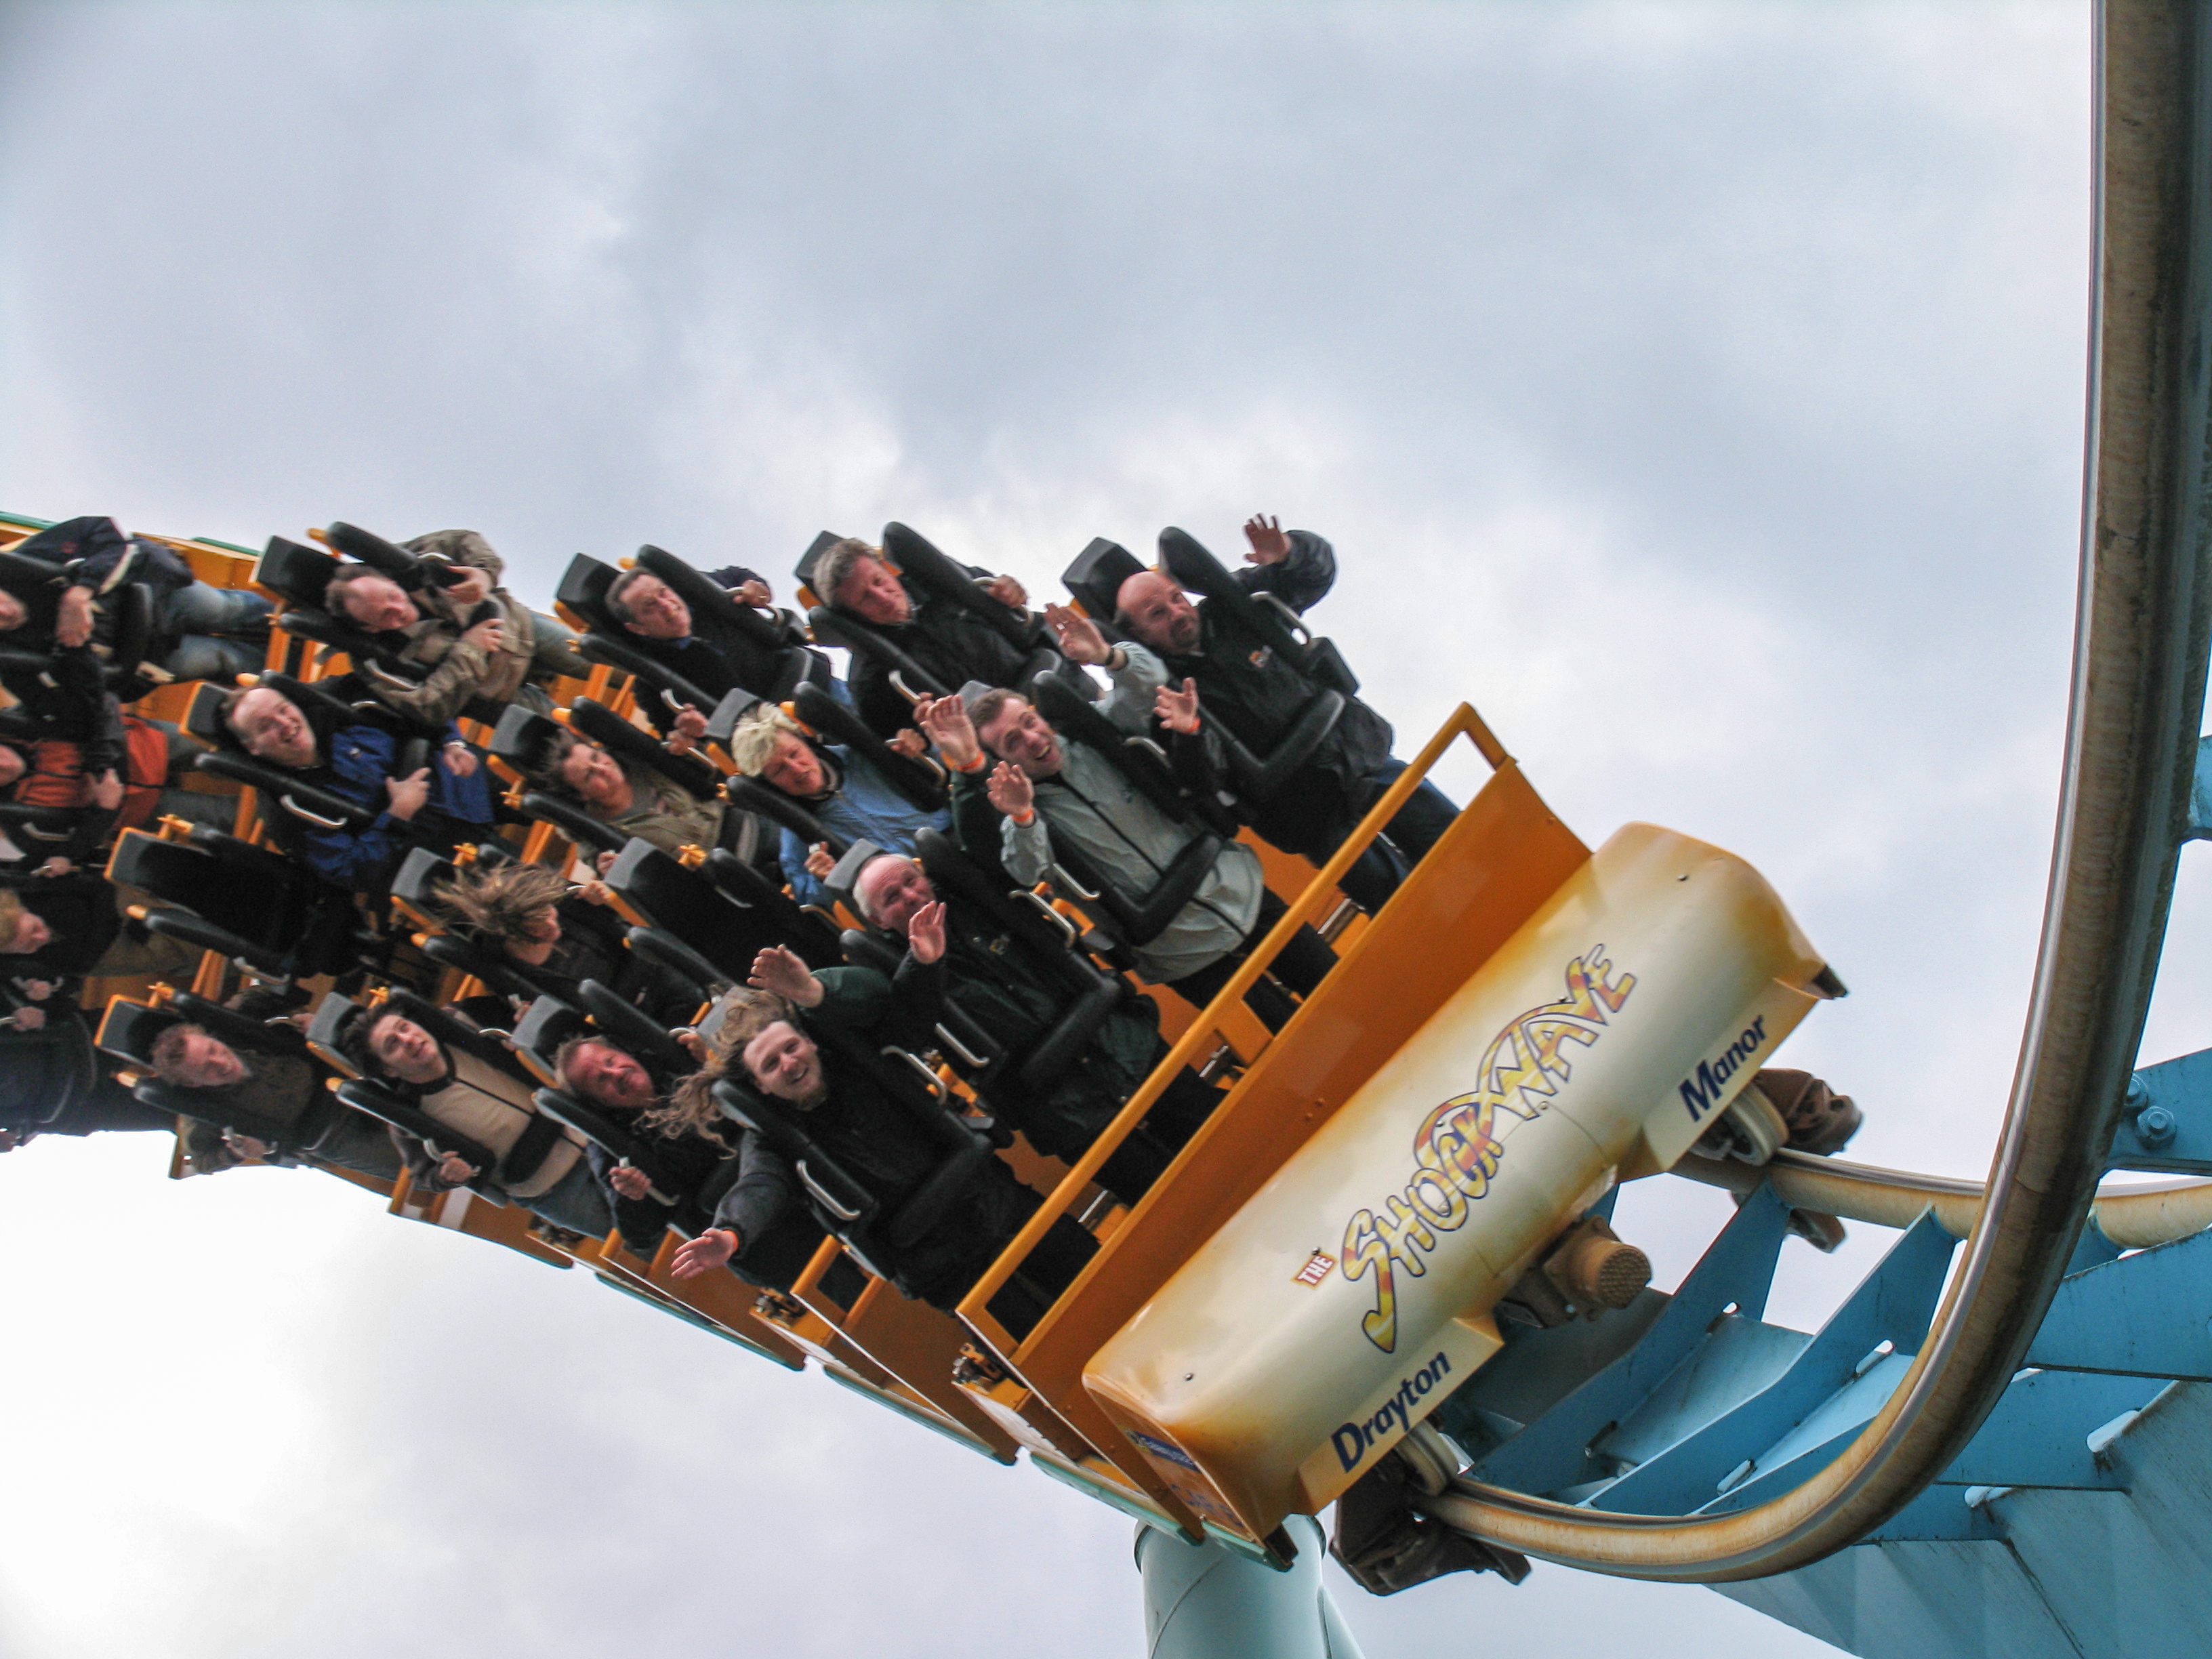 Stand-up roller coaster - Wikipedia